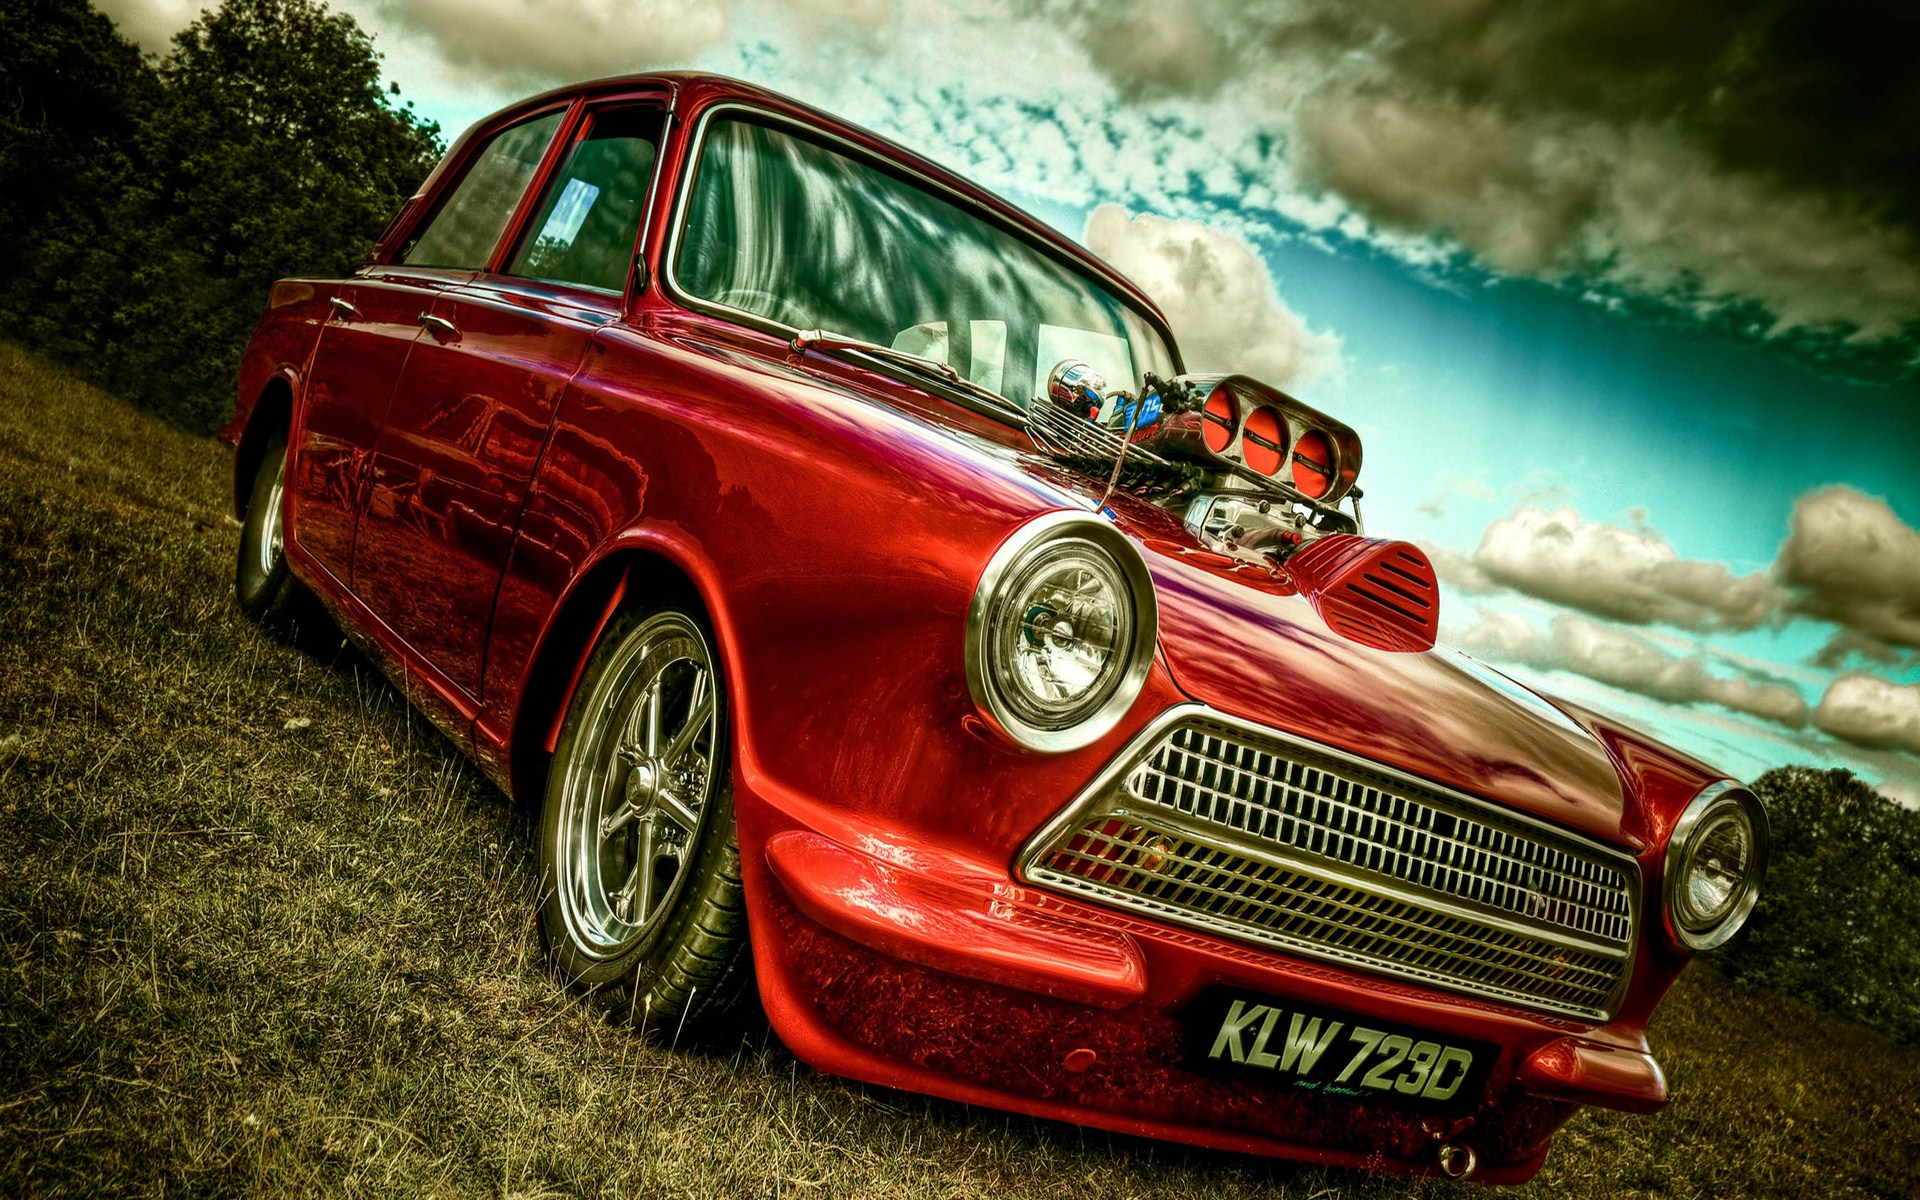 Download wallpaper with cars Hot Rod with tags: Hot